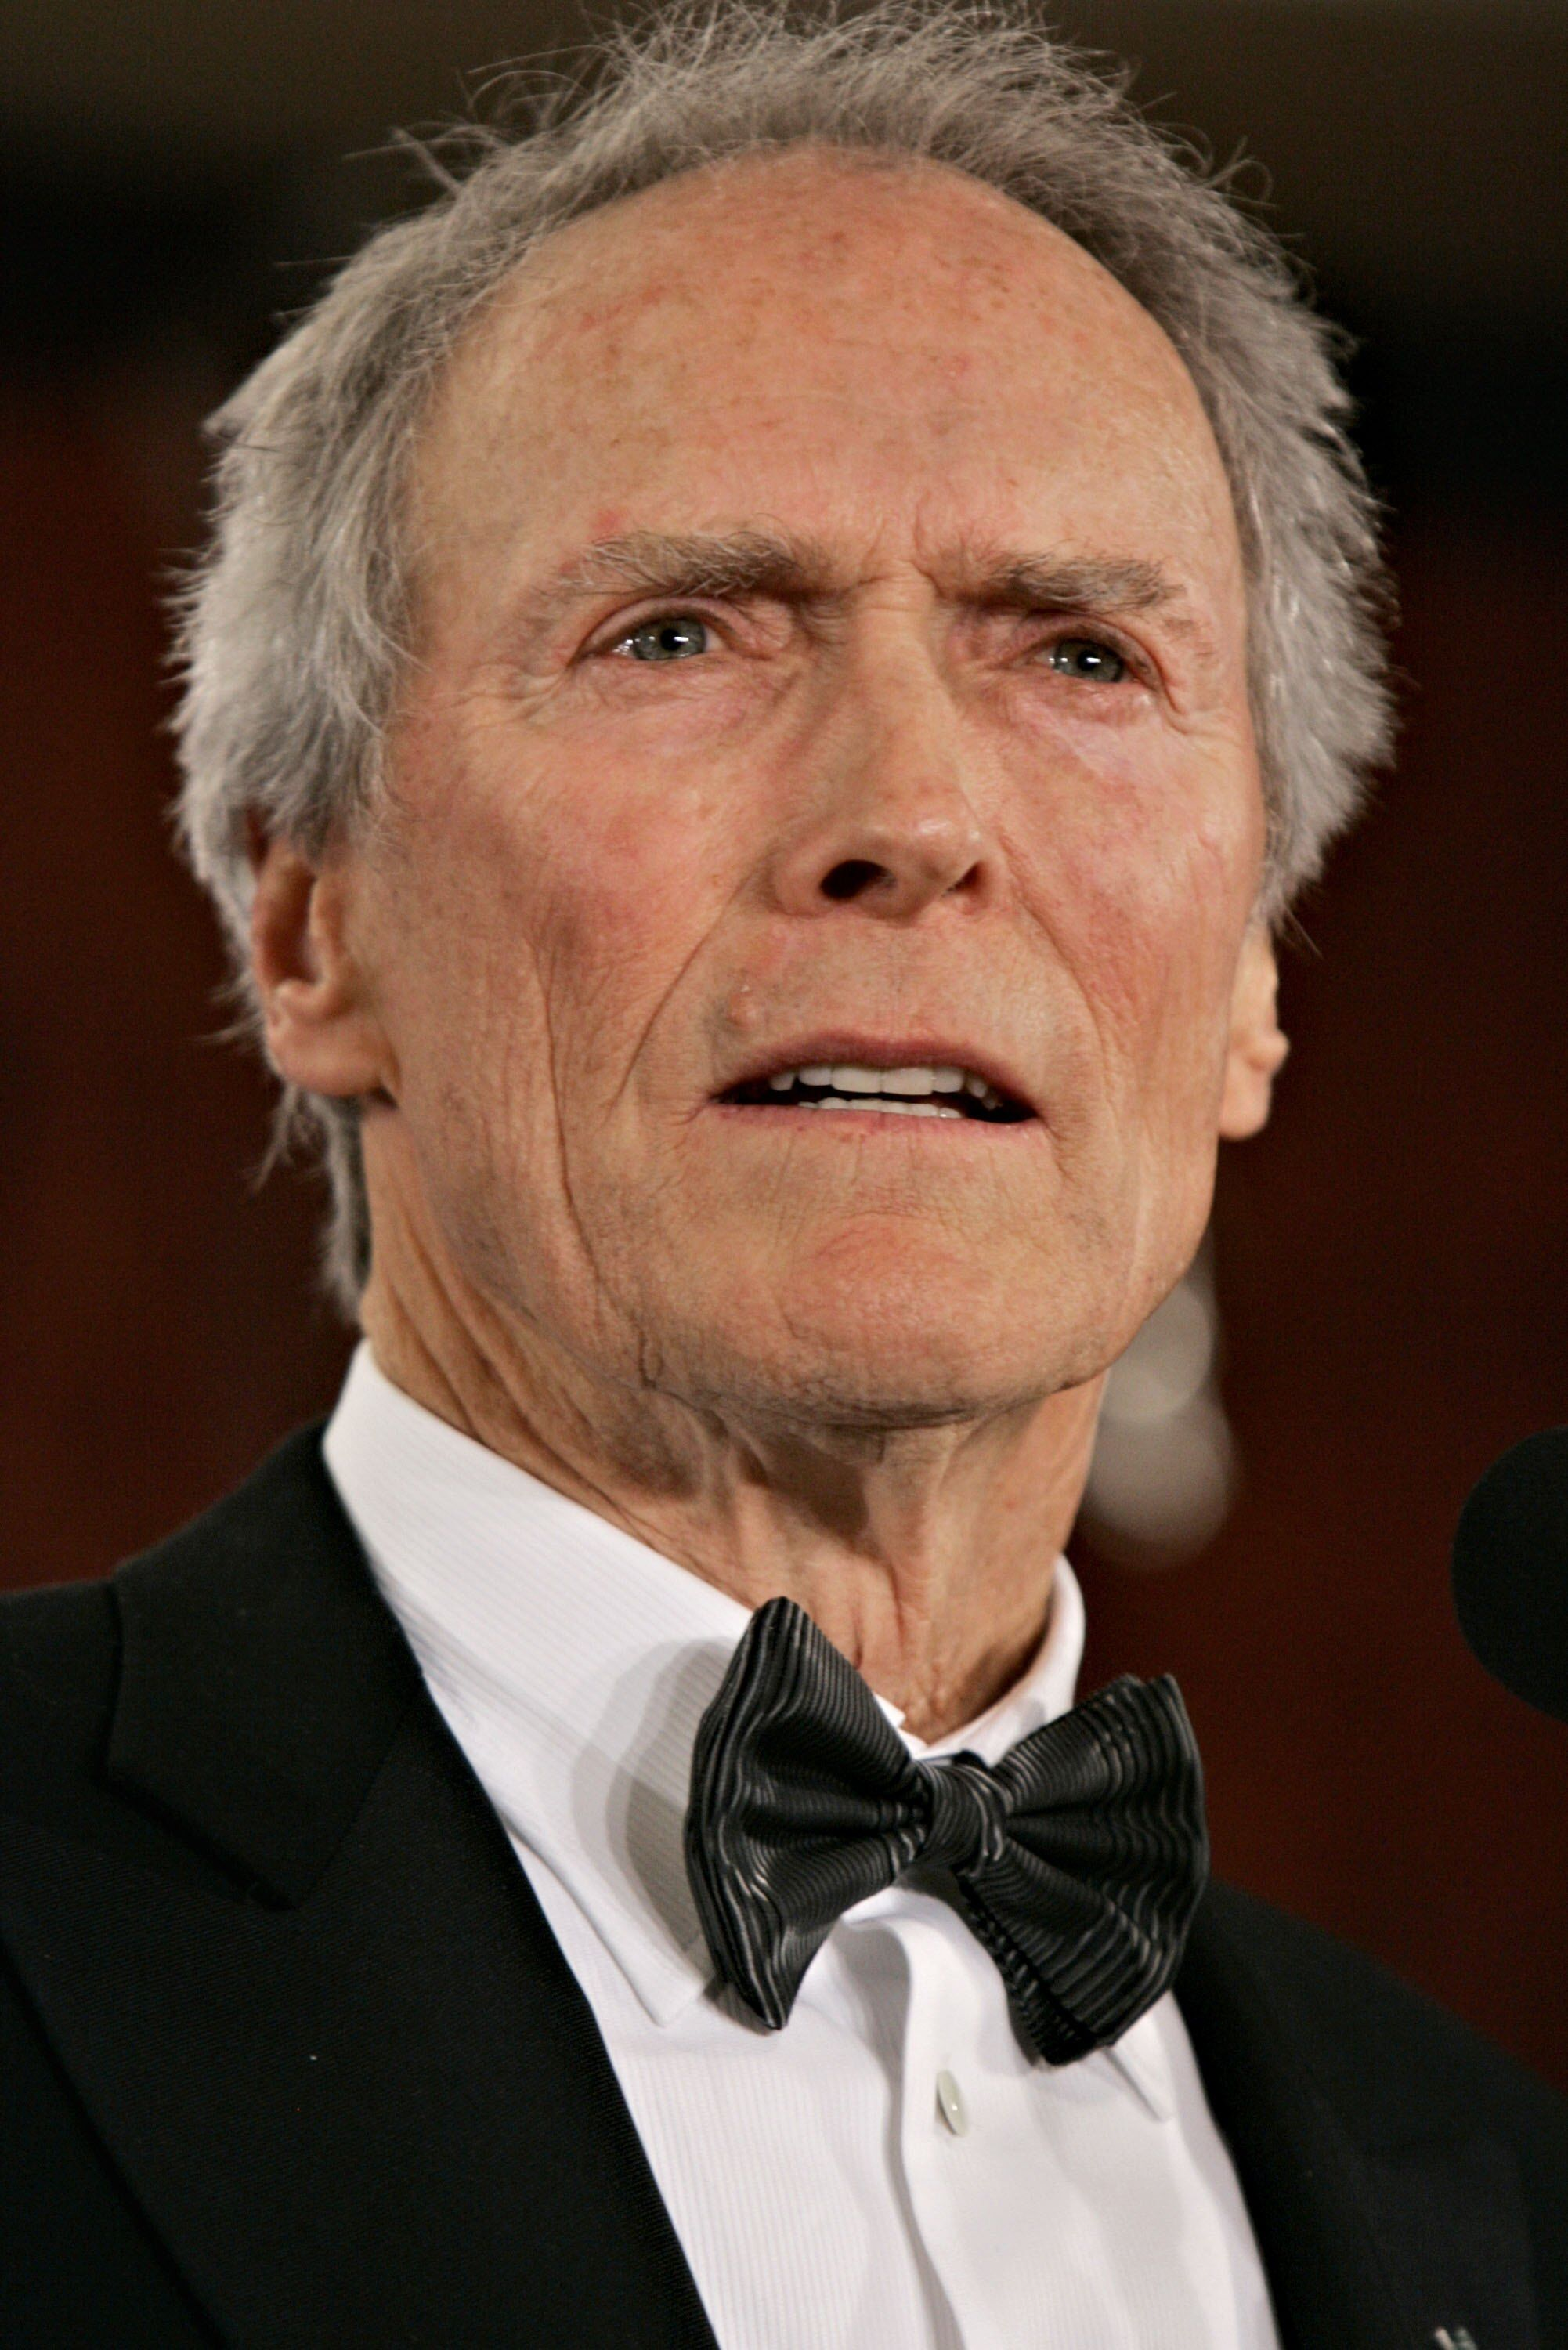 Clint Eastwood. I Image: Getty Images.